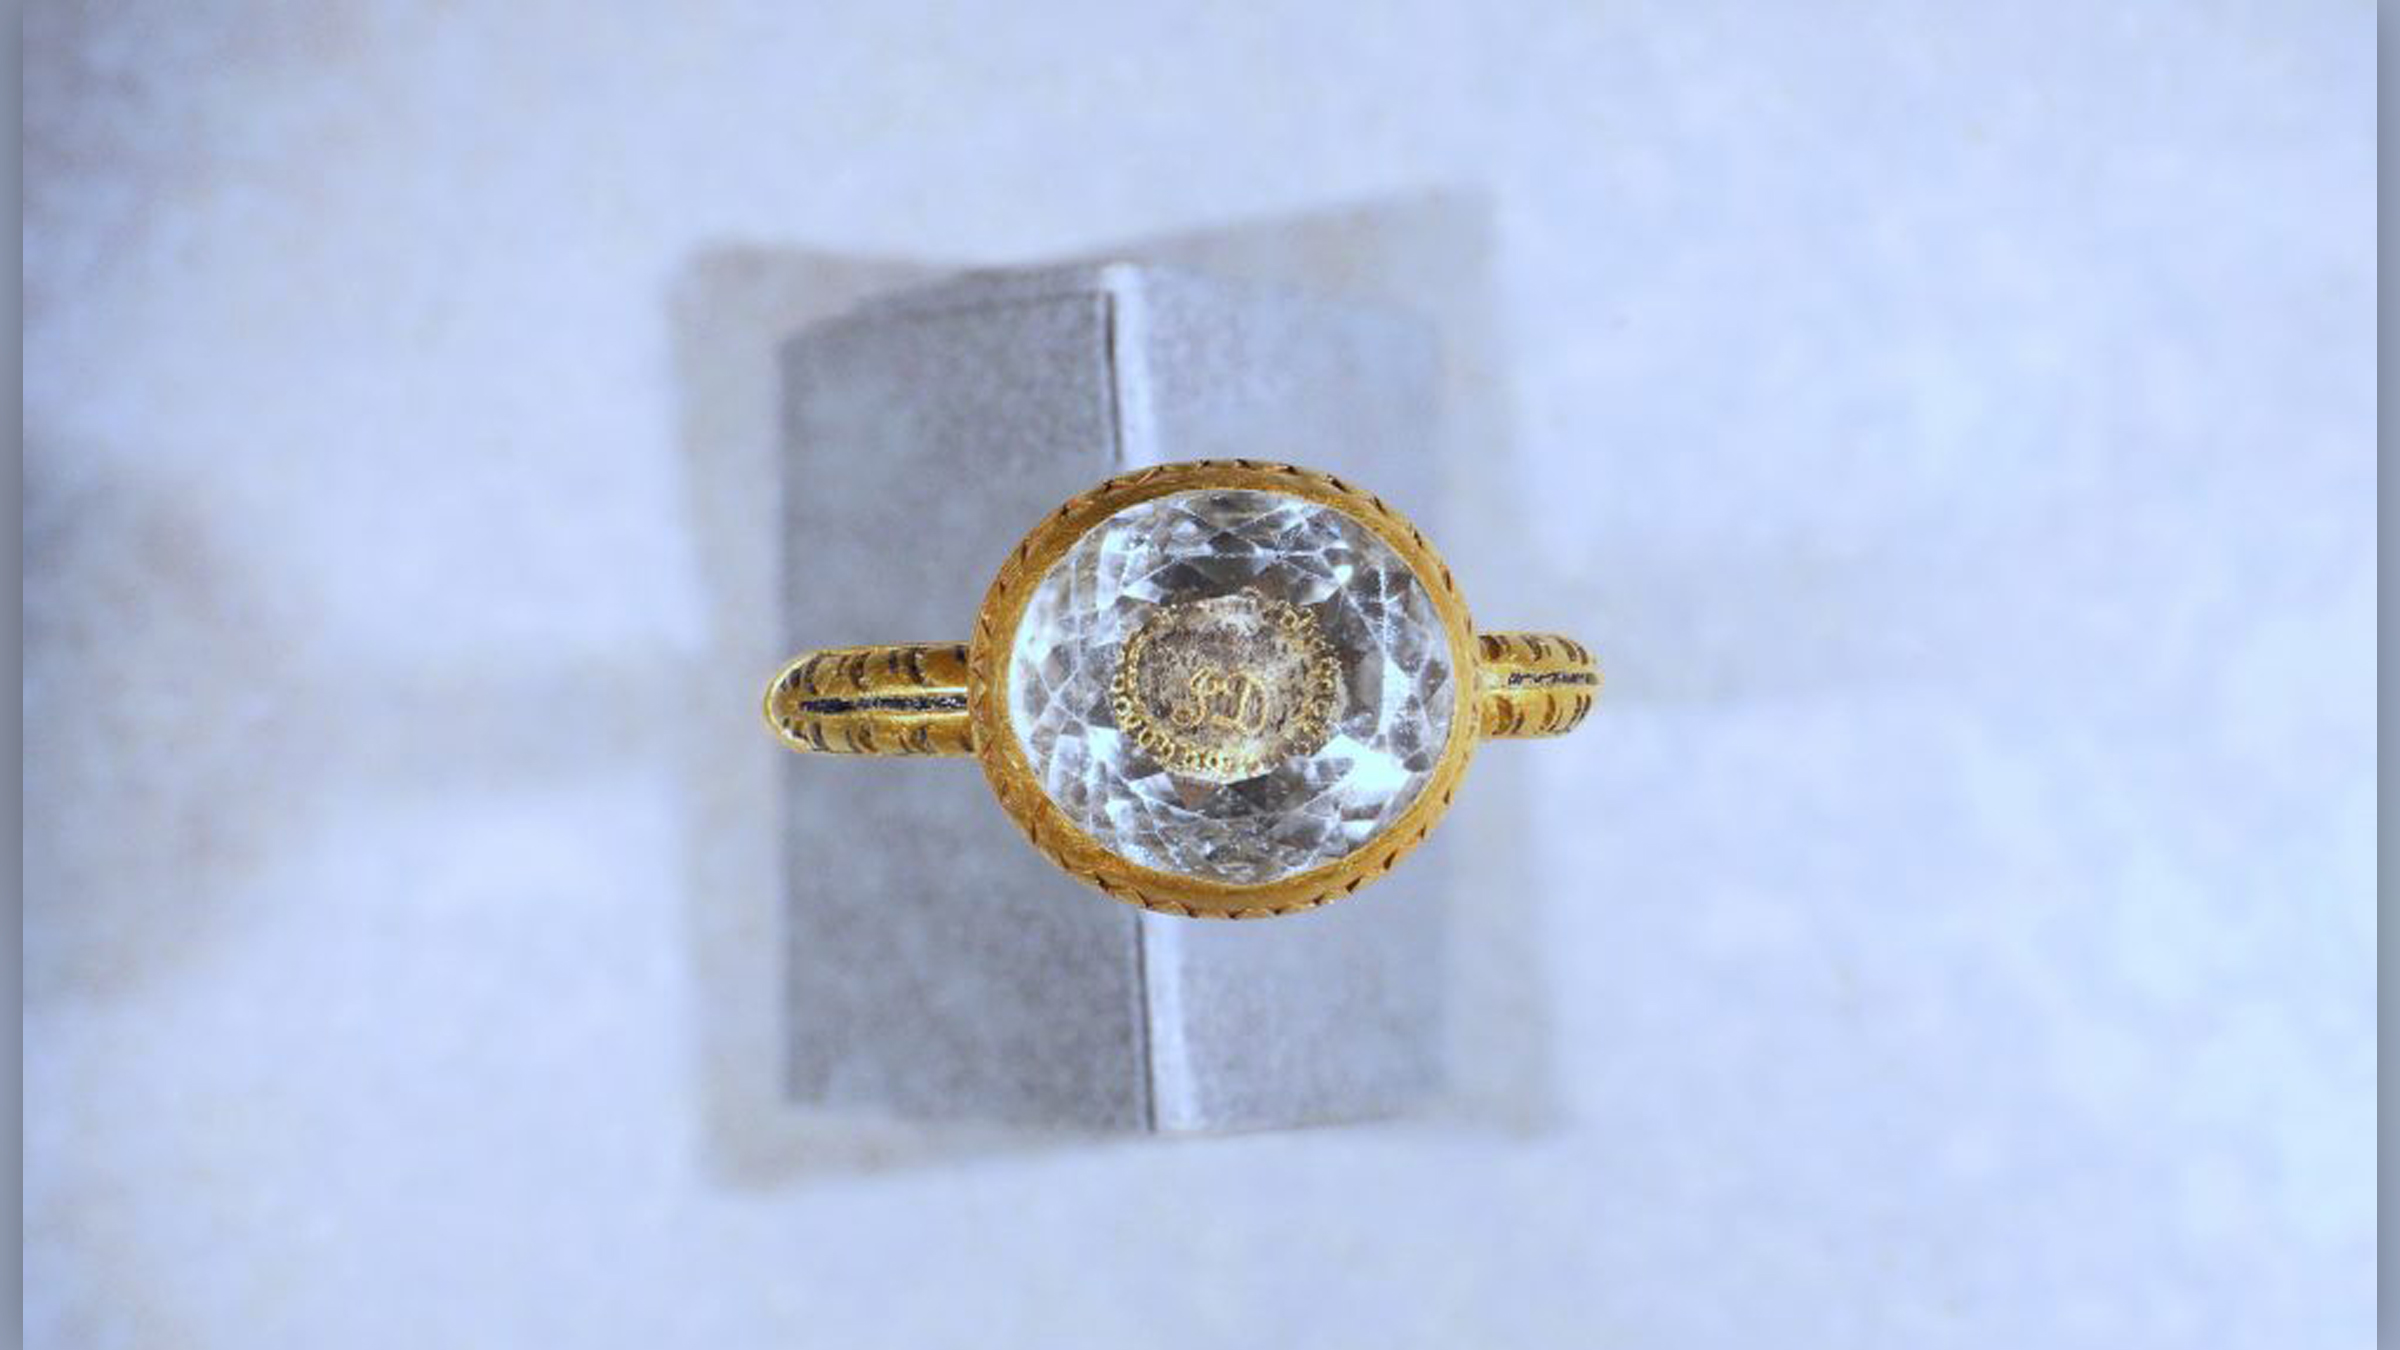 370-year-old gold ring could have honored beheaded earl 4Q3rQ6iwiCZud8WgKfHTmC